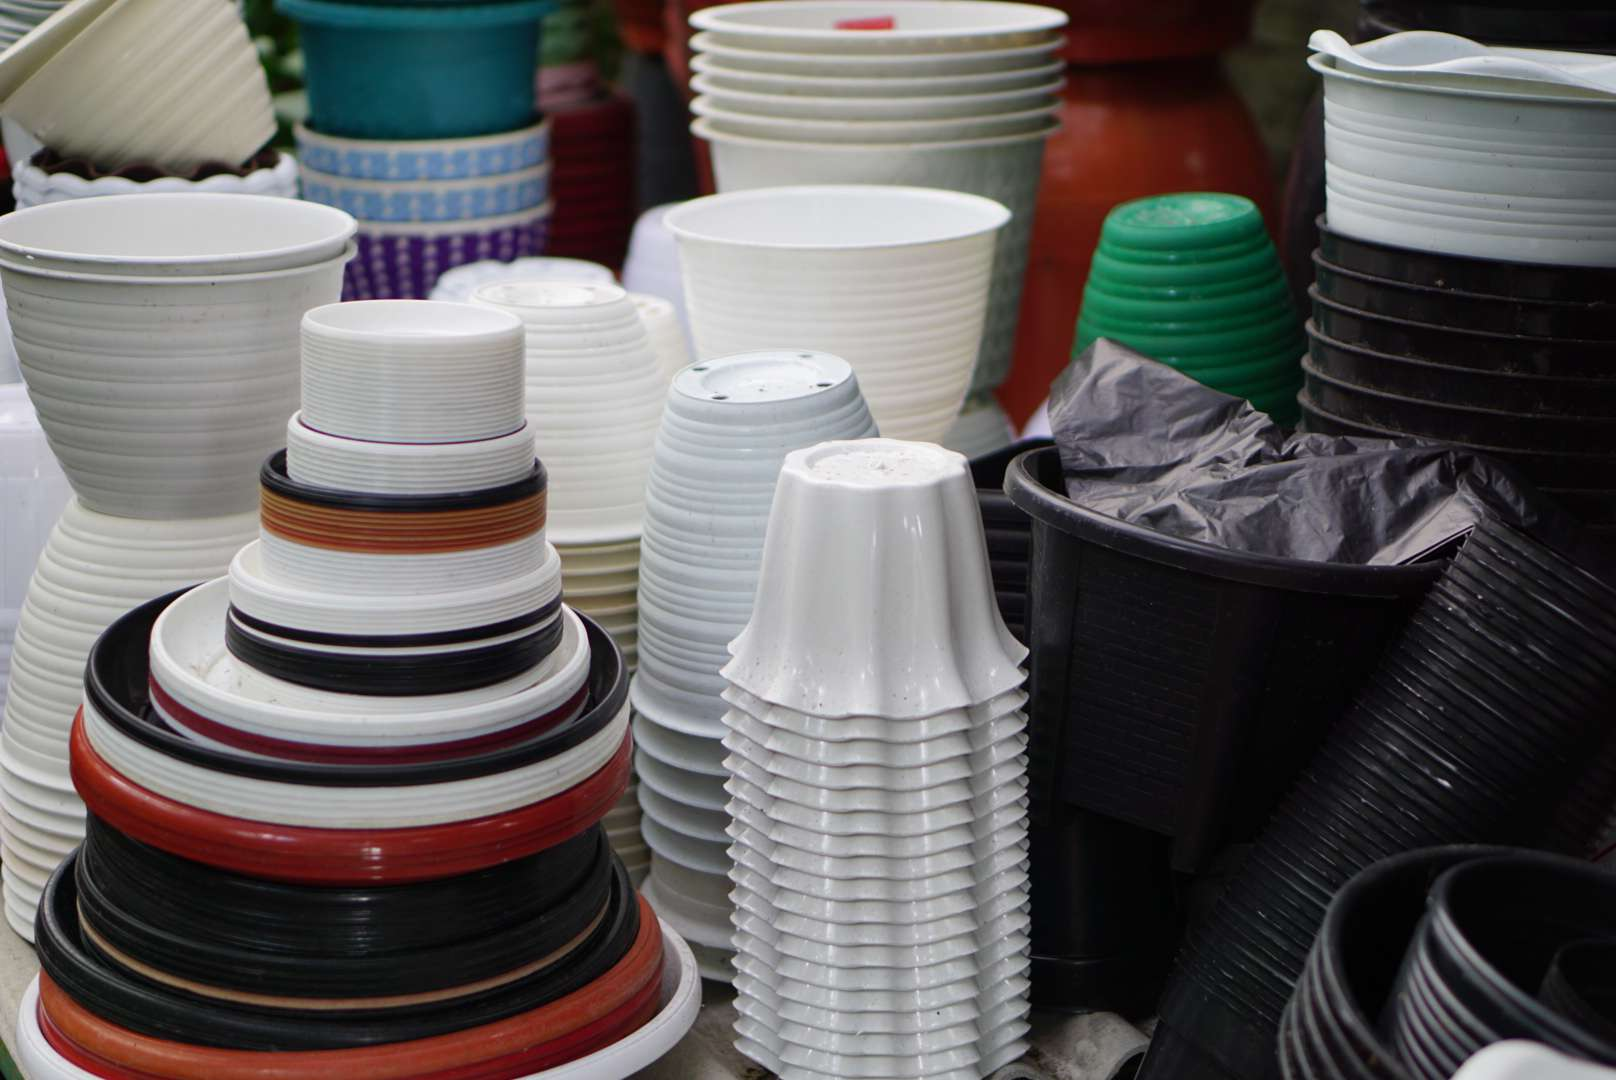 choosing containers with drainage